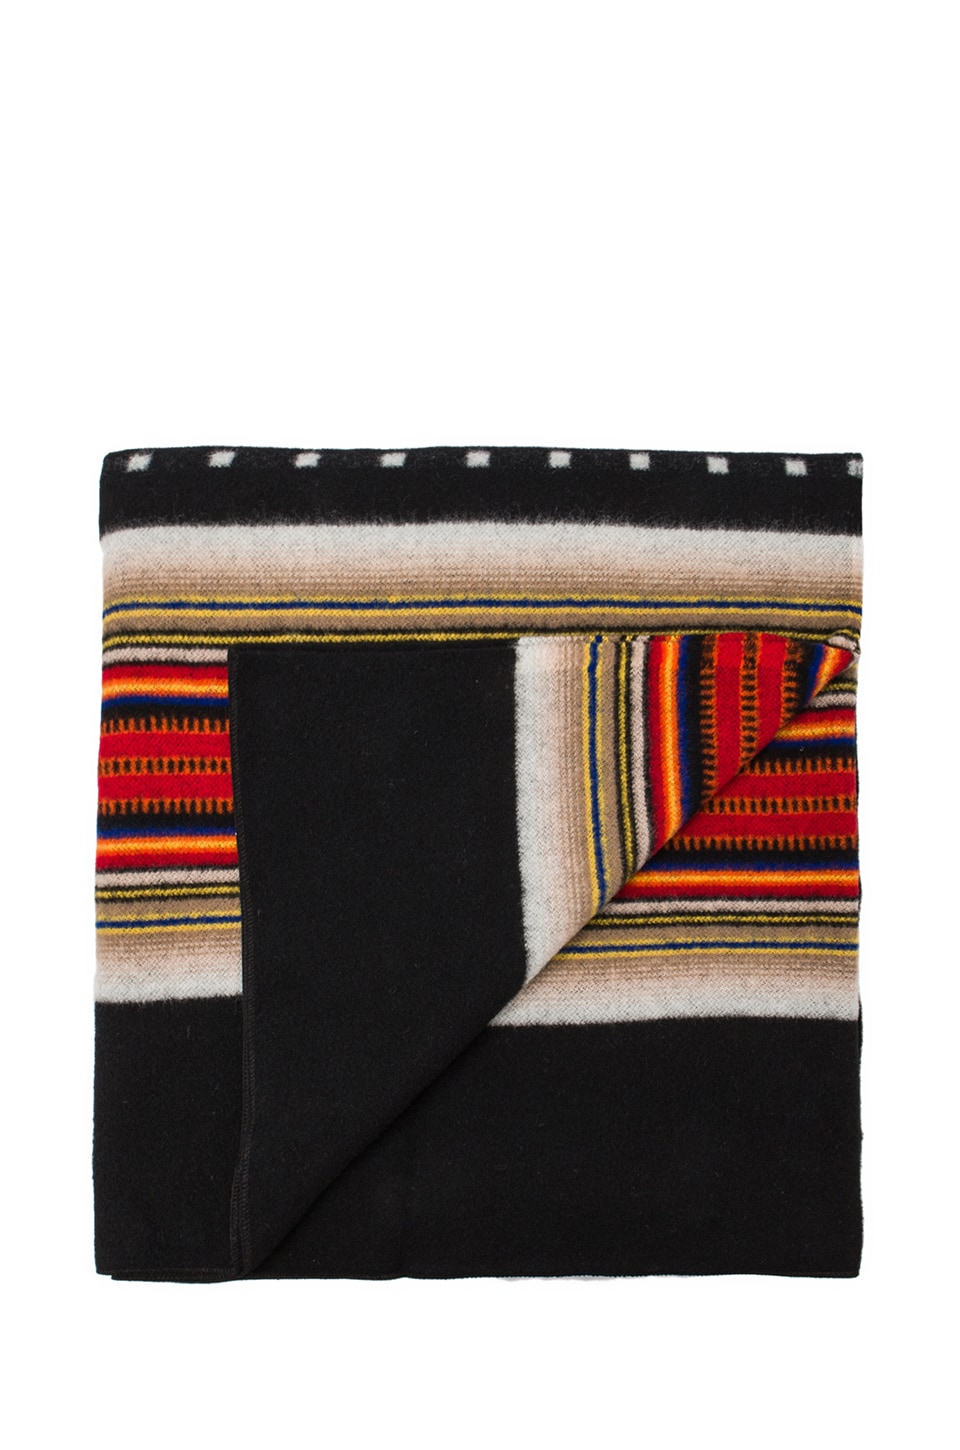 Pendleton National Parks Blanket in Acadia